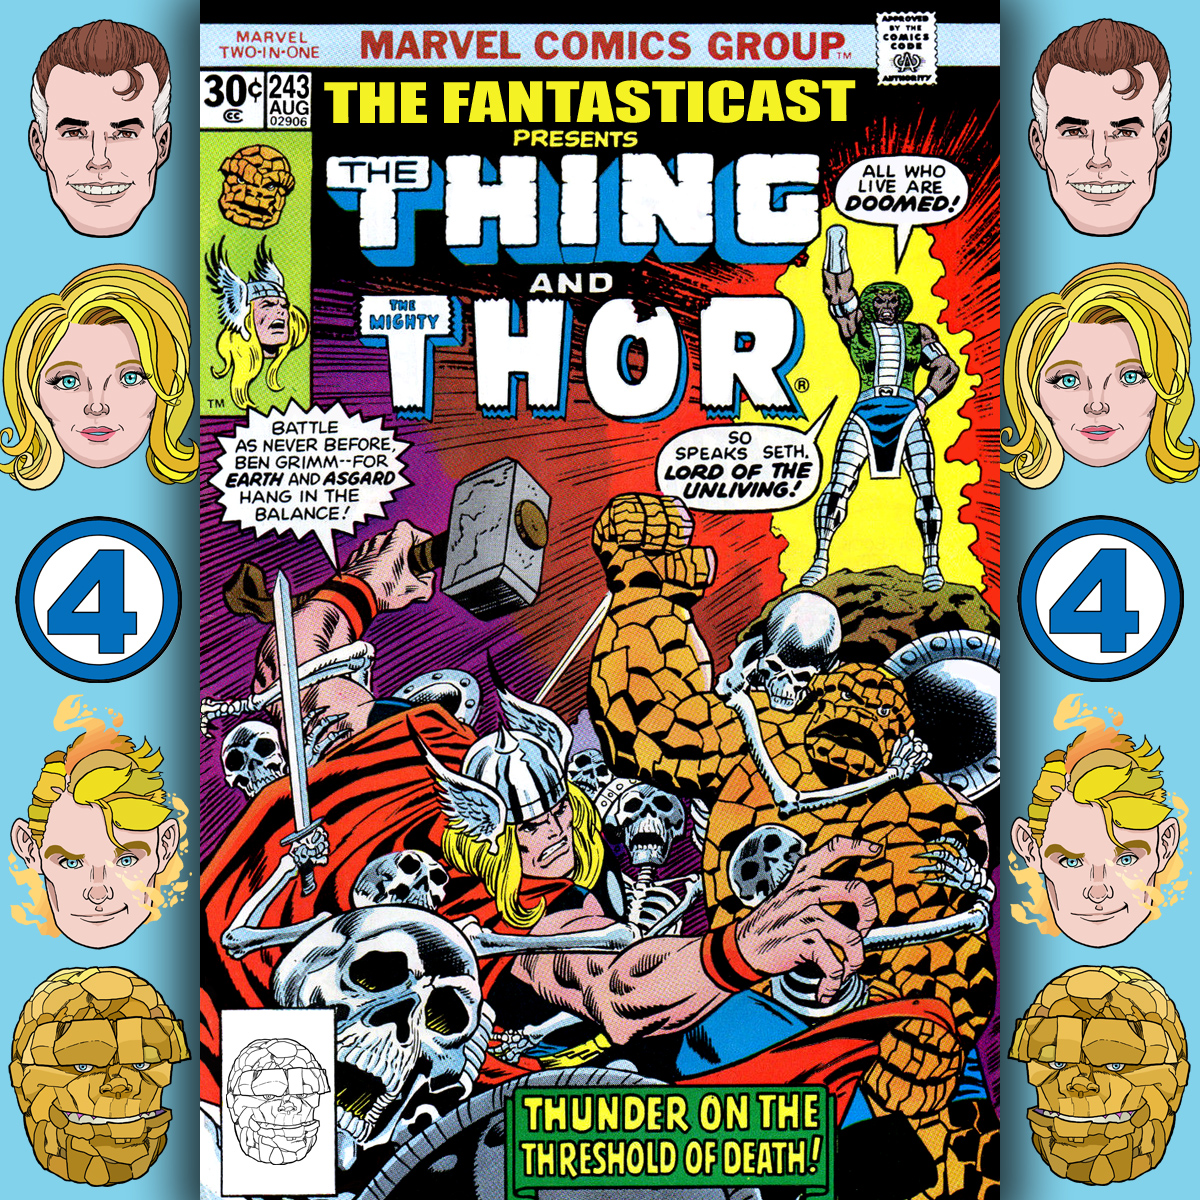 The Fantasticast Episode 243